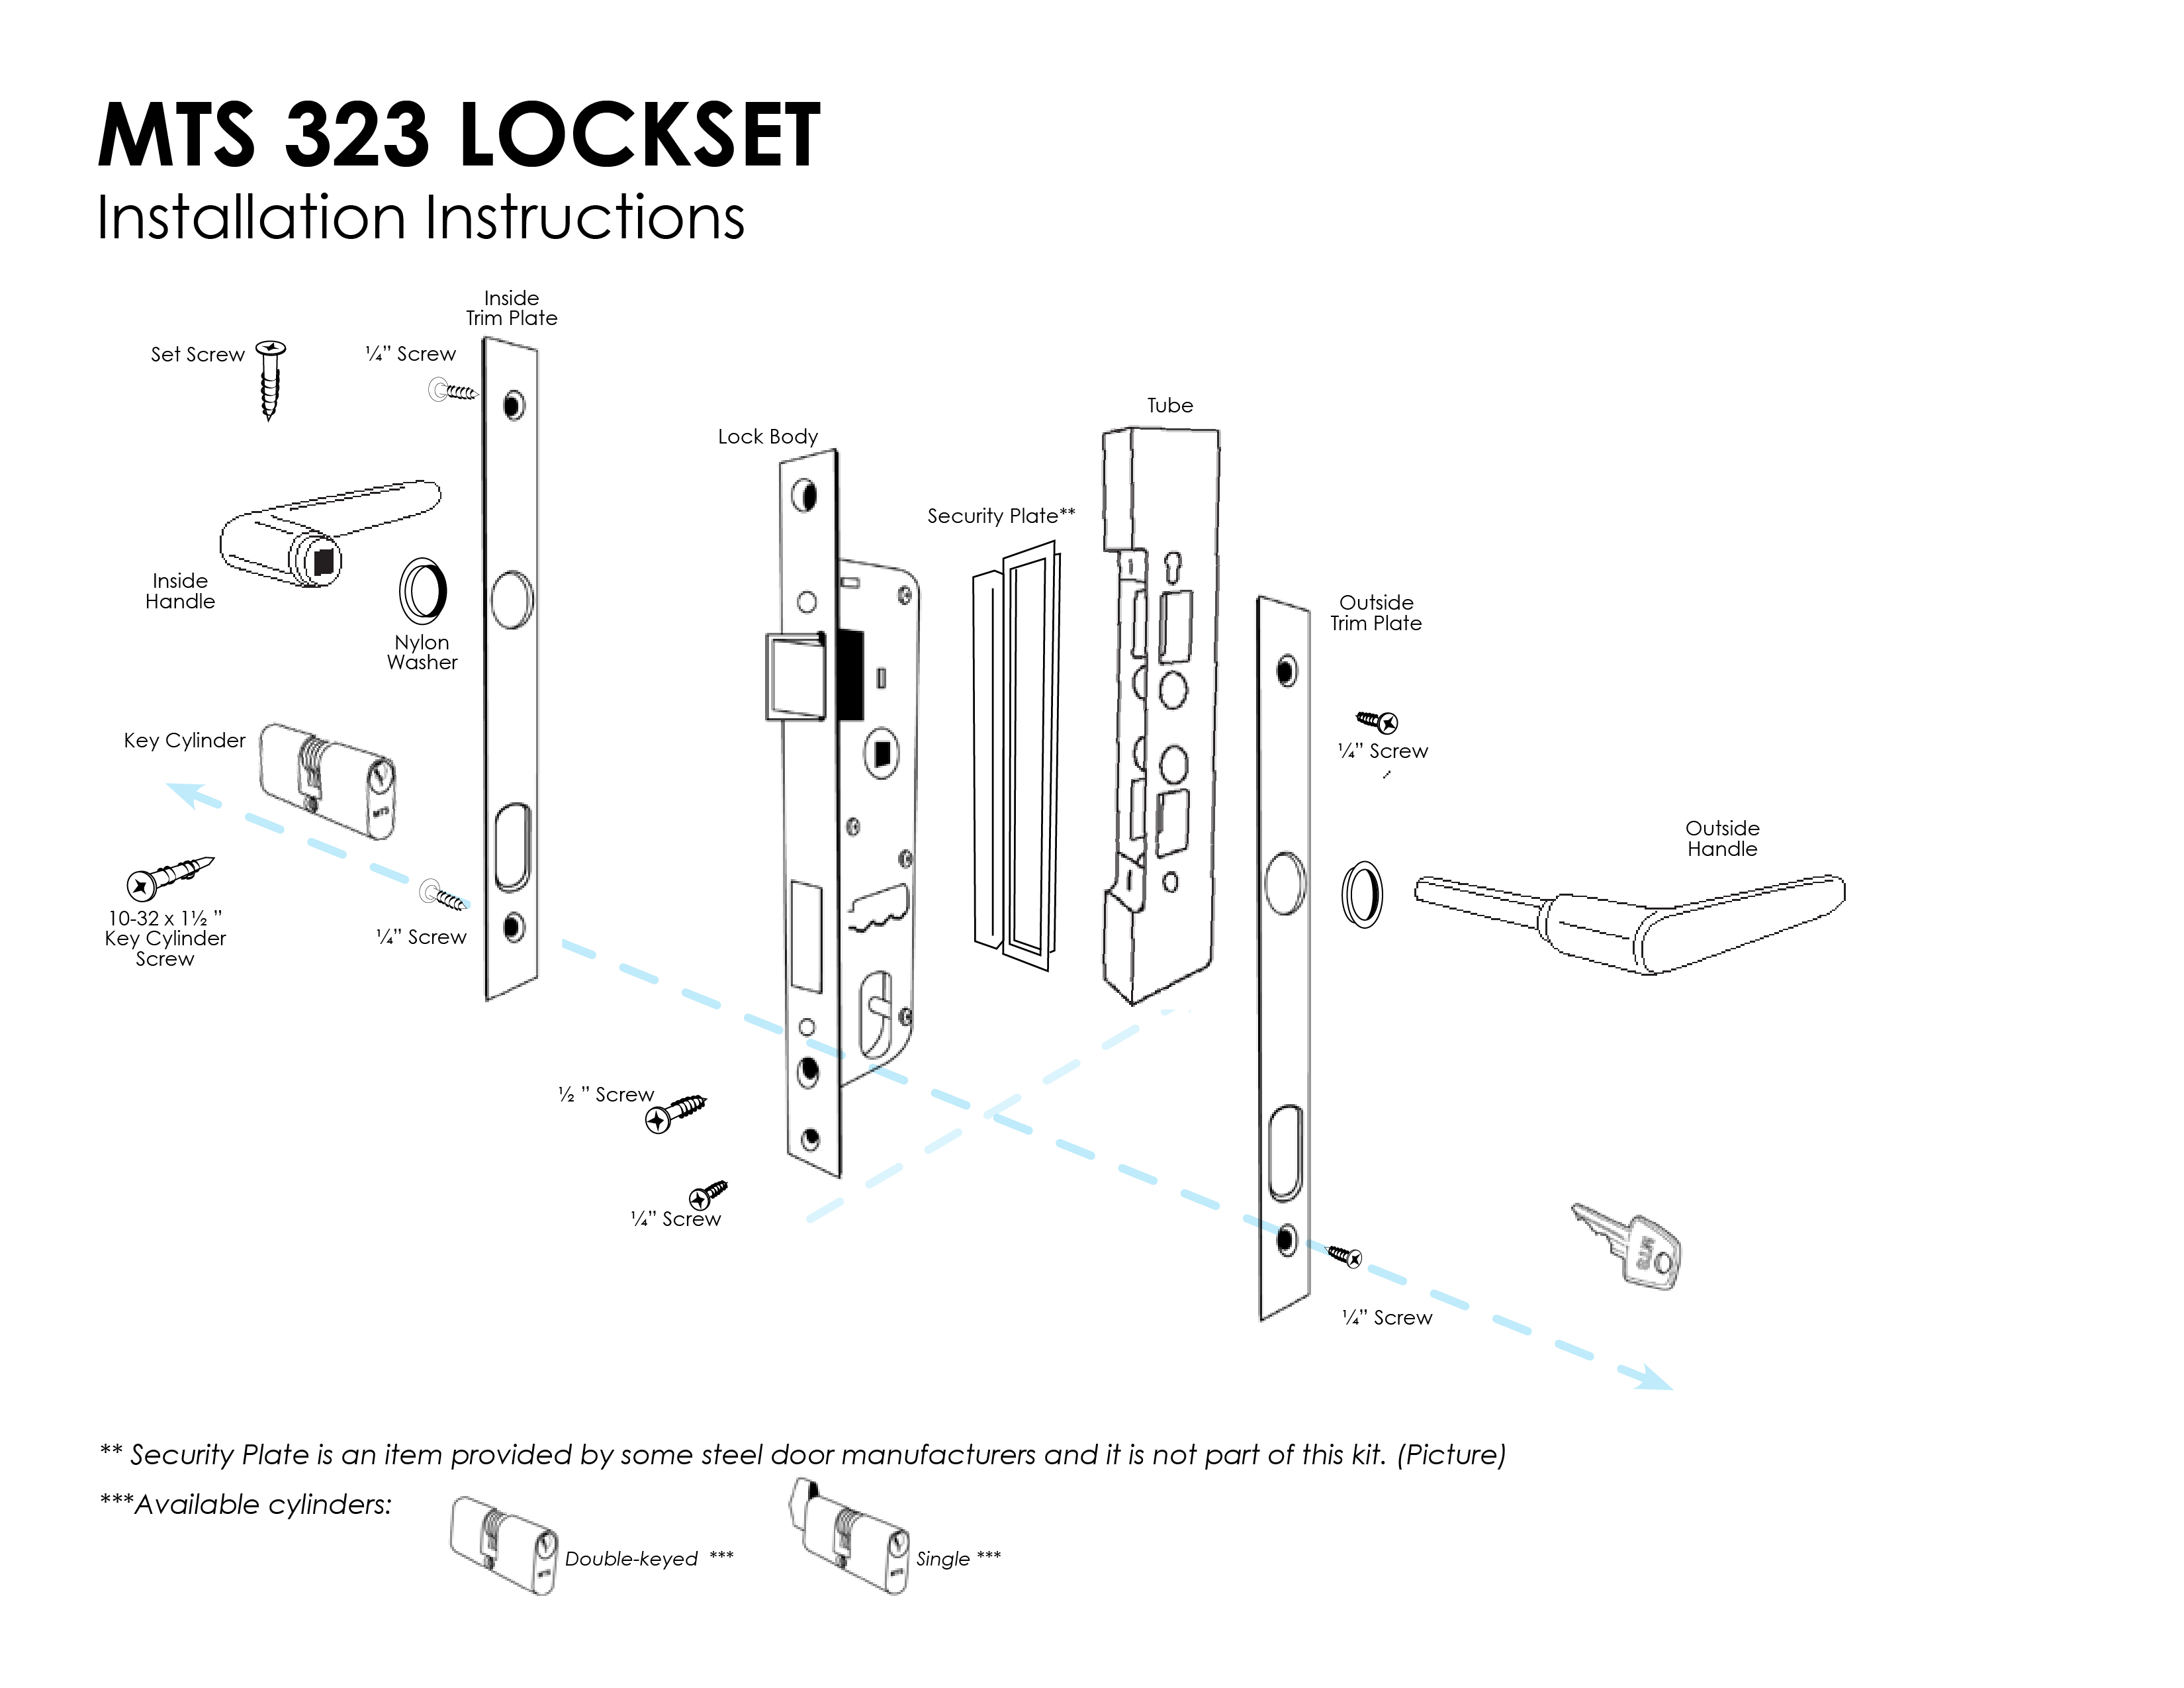 MTS 323 Lockset